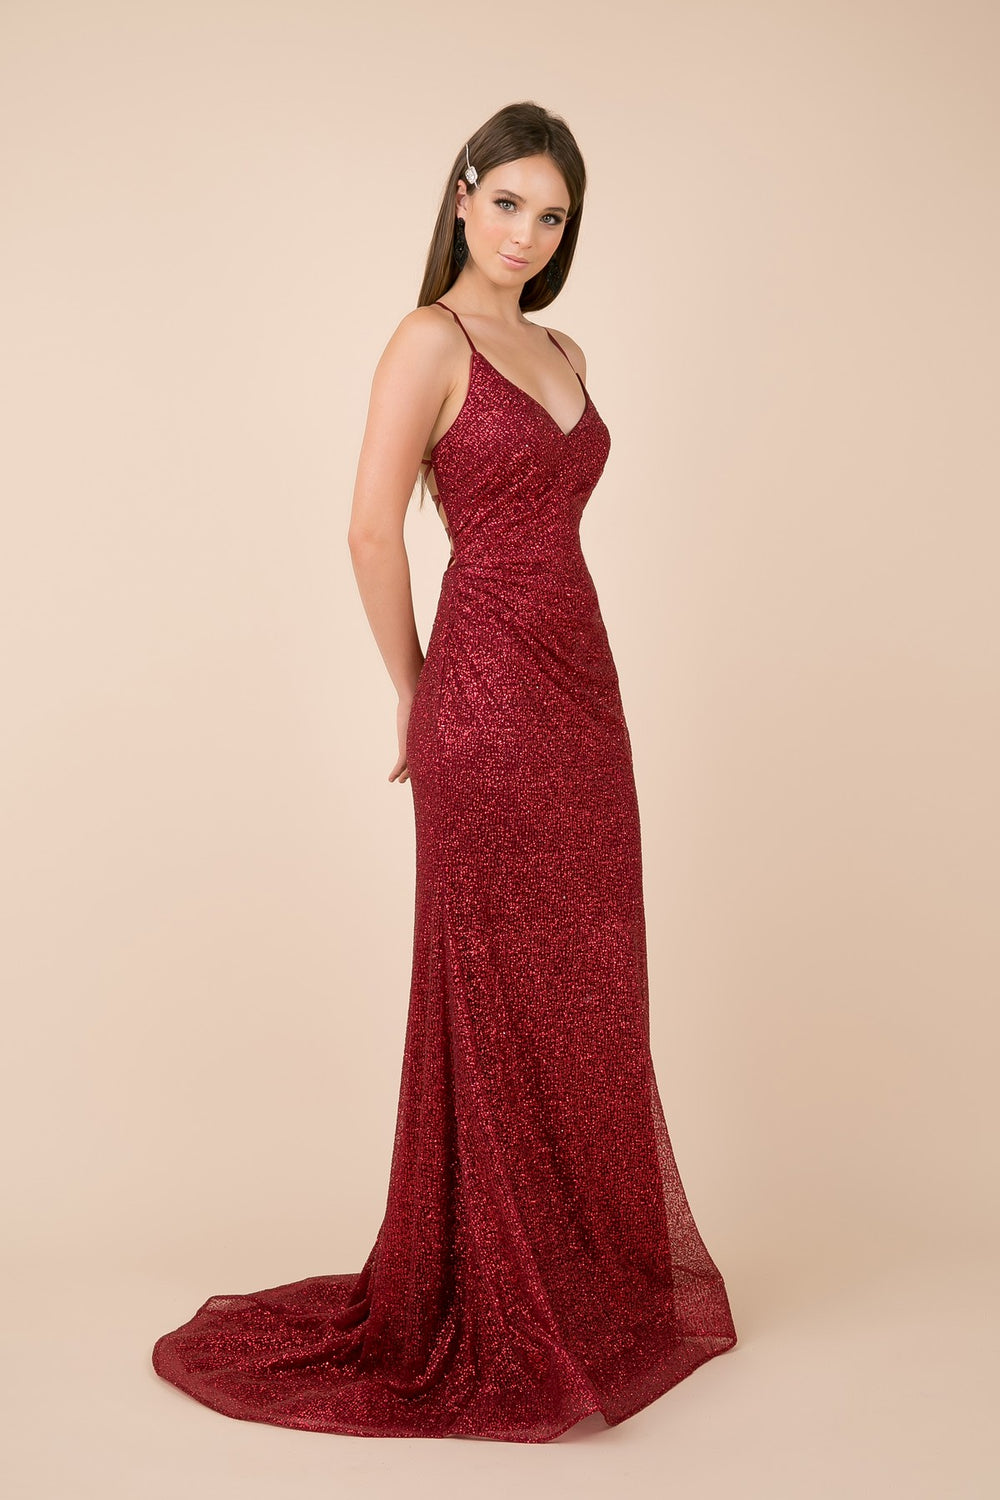 THIN STRAPS V NECKLINE WITH SHIMMERY TRUMPET GOWN_T290 BY NARIANNA